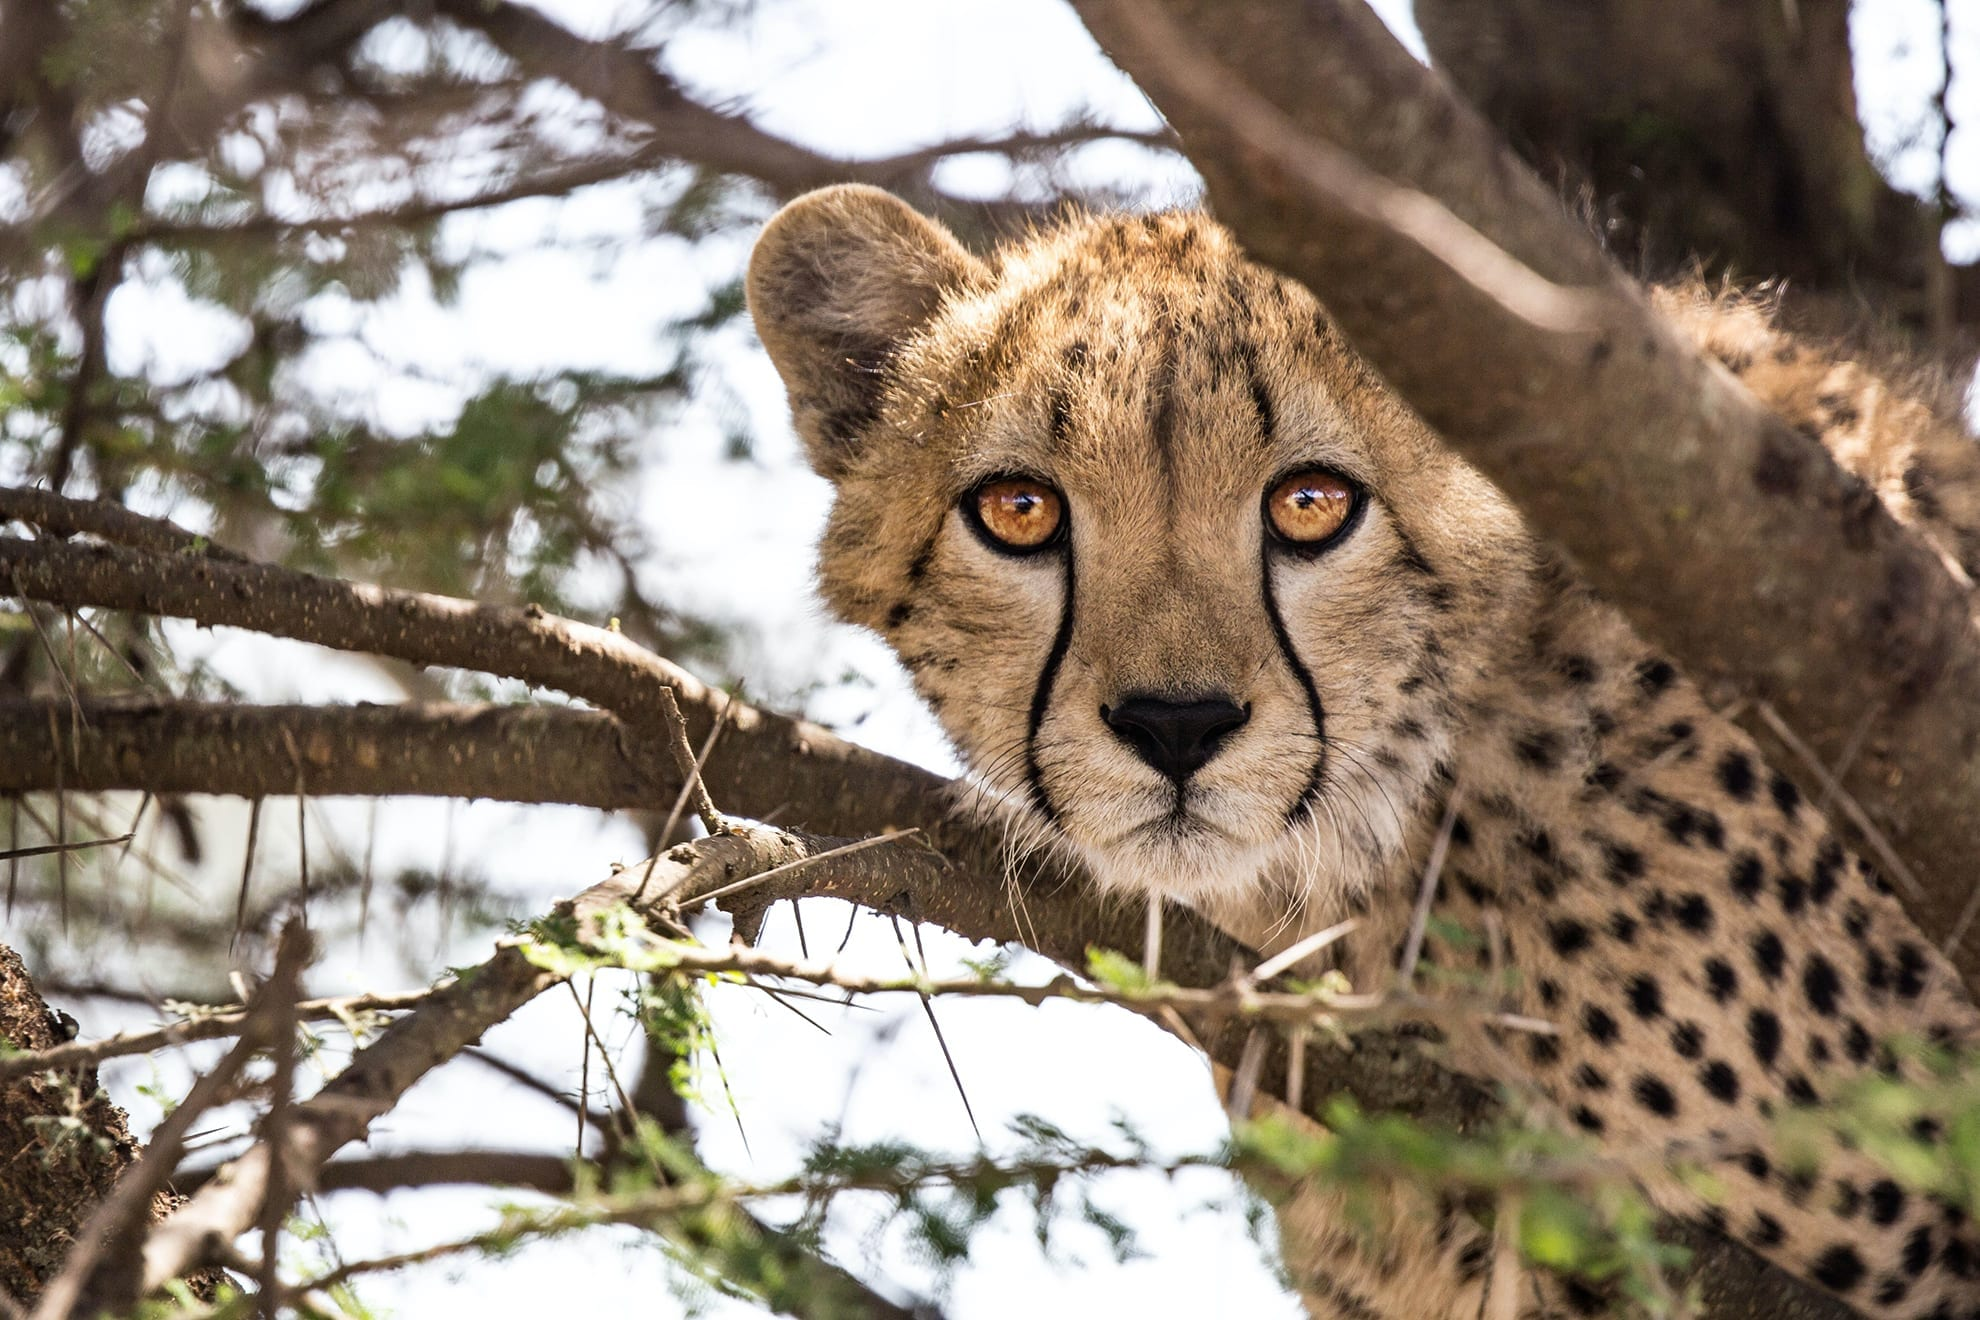 Cheetahs are scant and encounetring these are a great privilege